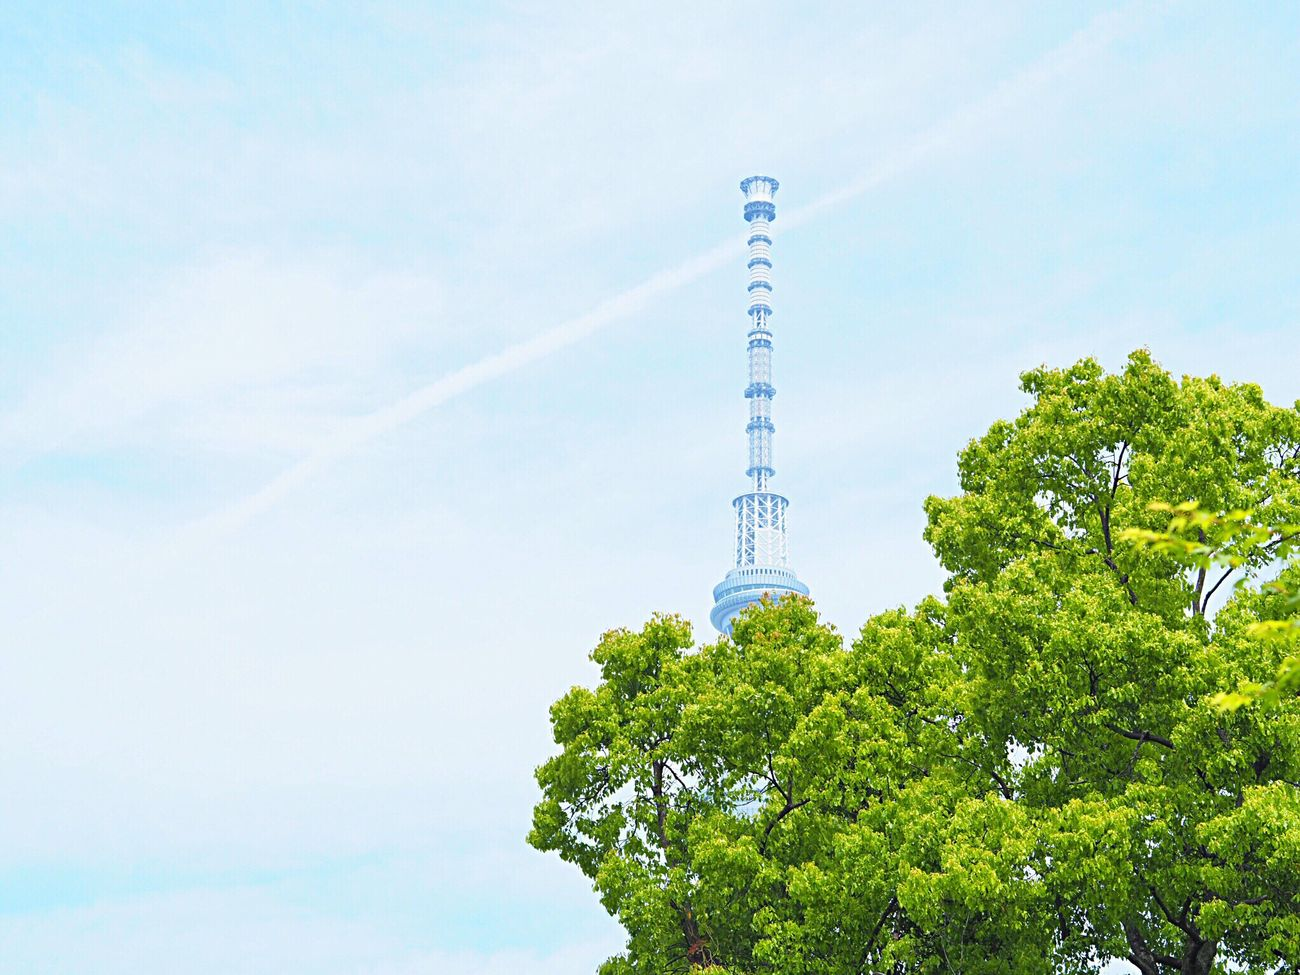 Skytree Scenics Sky Architecture Built Structure Green Color Growth Building Exterior Nature Beauty In Nature Tokyoskytree 東京スカイツリー Landscape Japanese Landscape Tokyo Tokyo,Japan Olympus Om-d E-m10